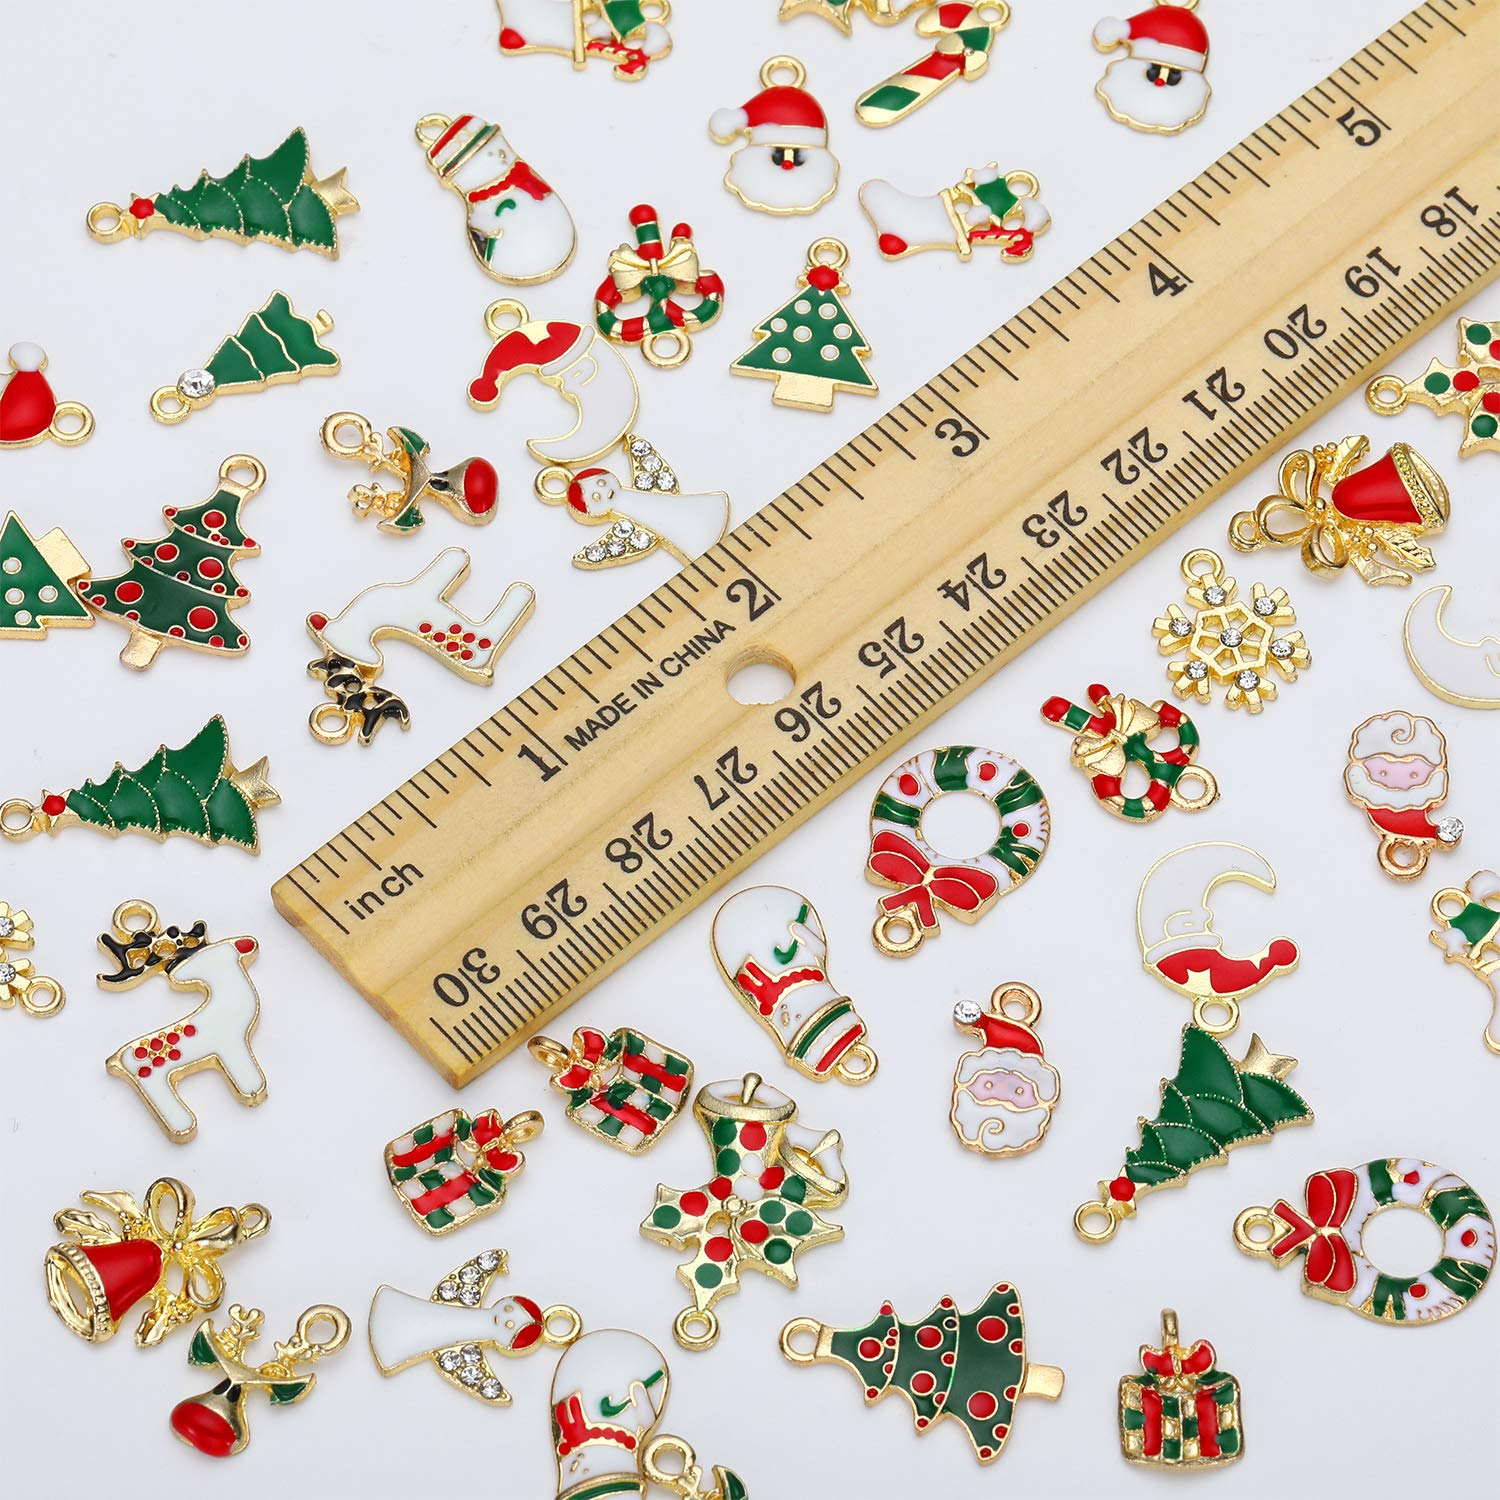 50 Pieces Christmas Pendant Charm Gold Plated Christmas Enamel Charm Pendant for DIY Jewelry Making Necklace Bracelet Earring Art Crafts